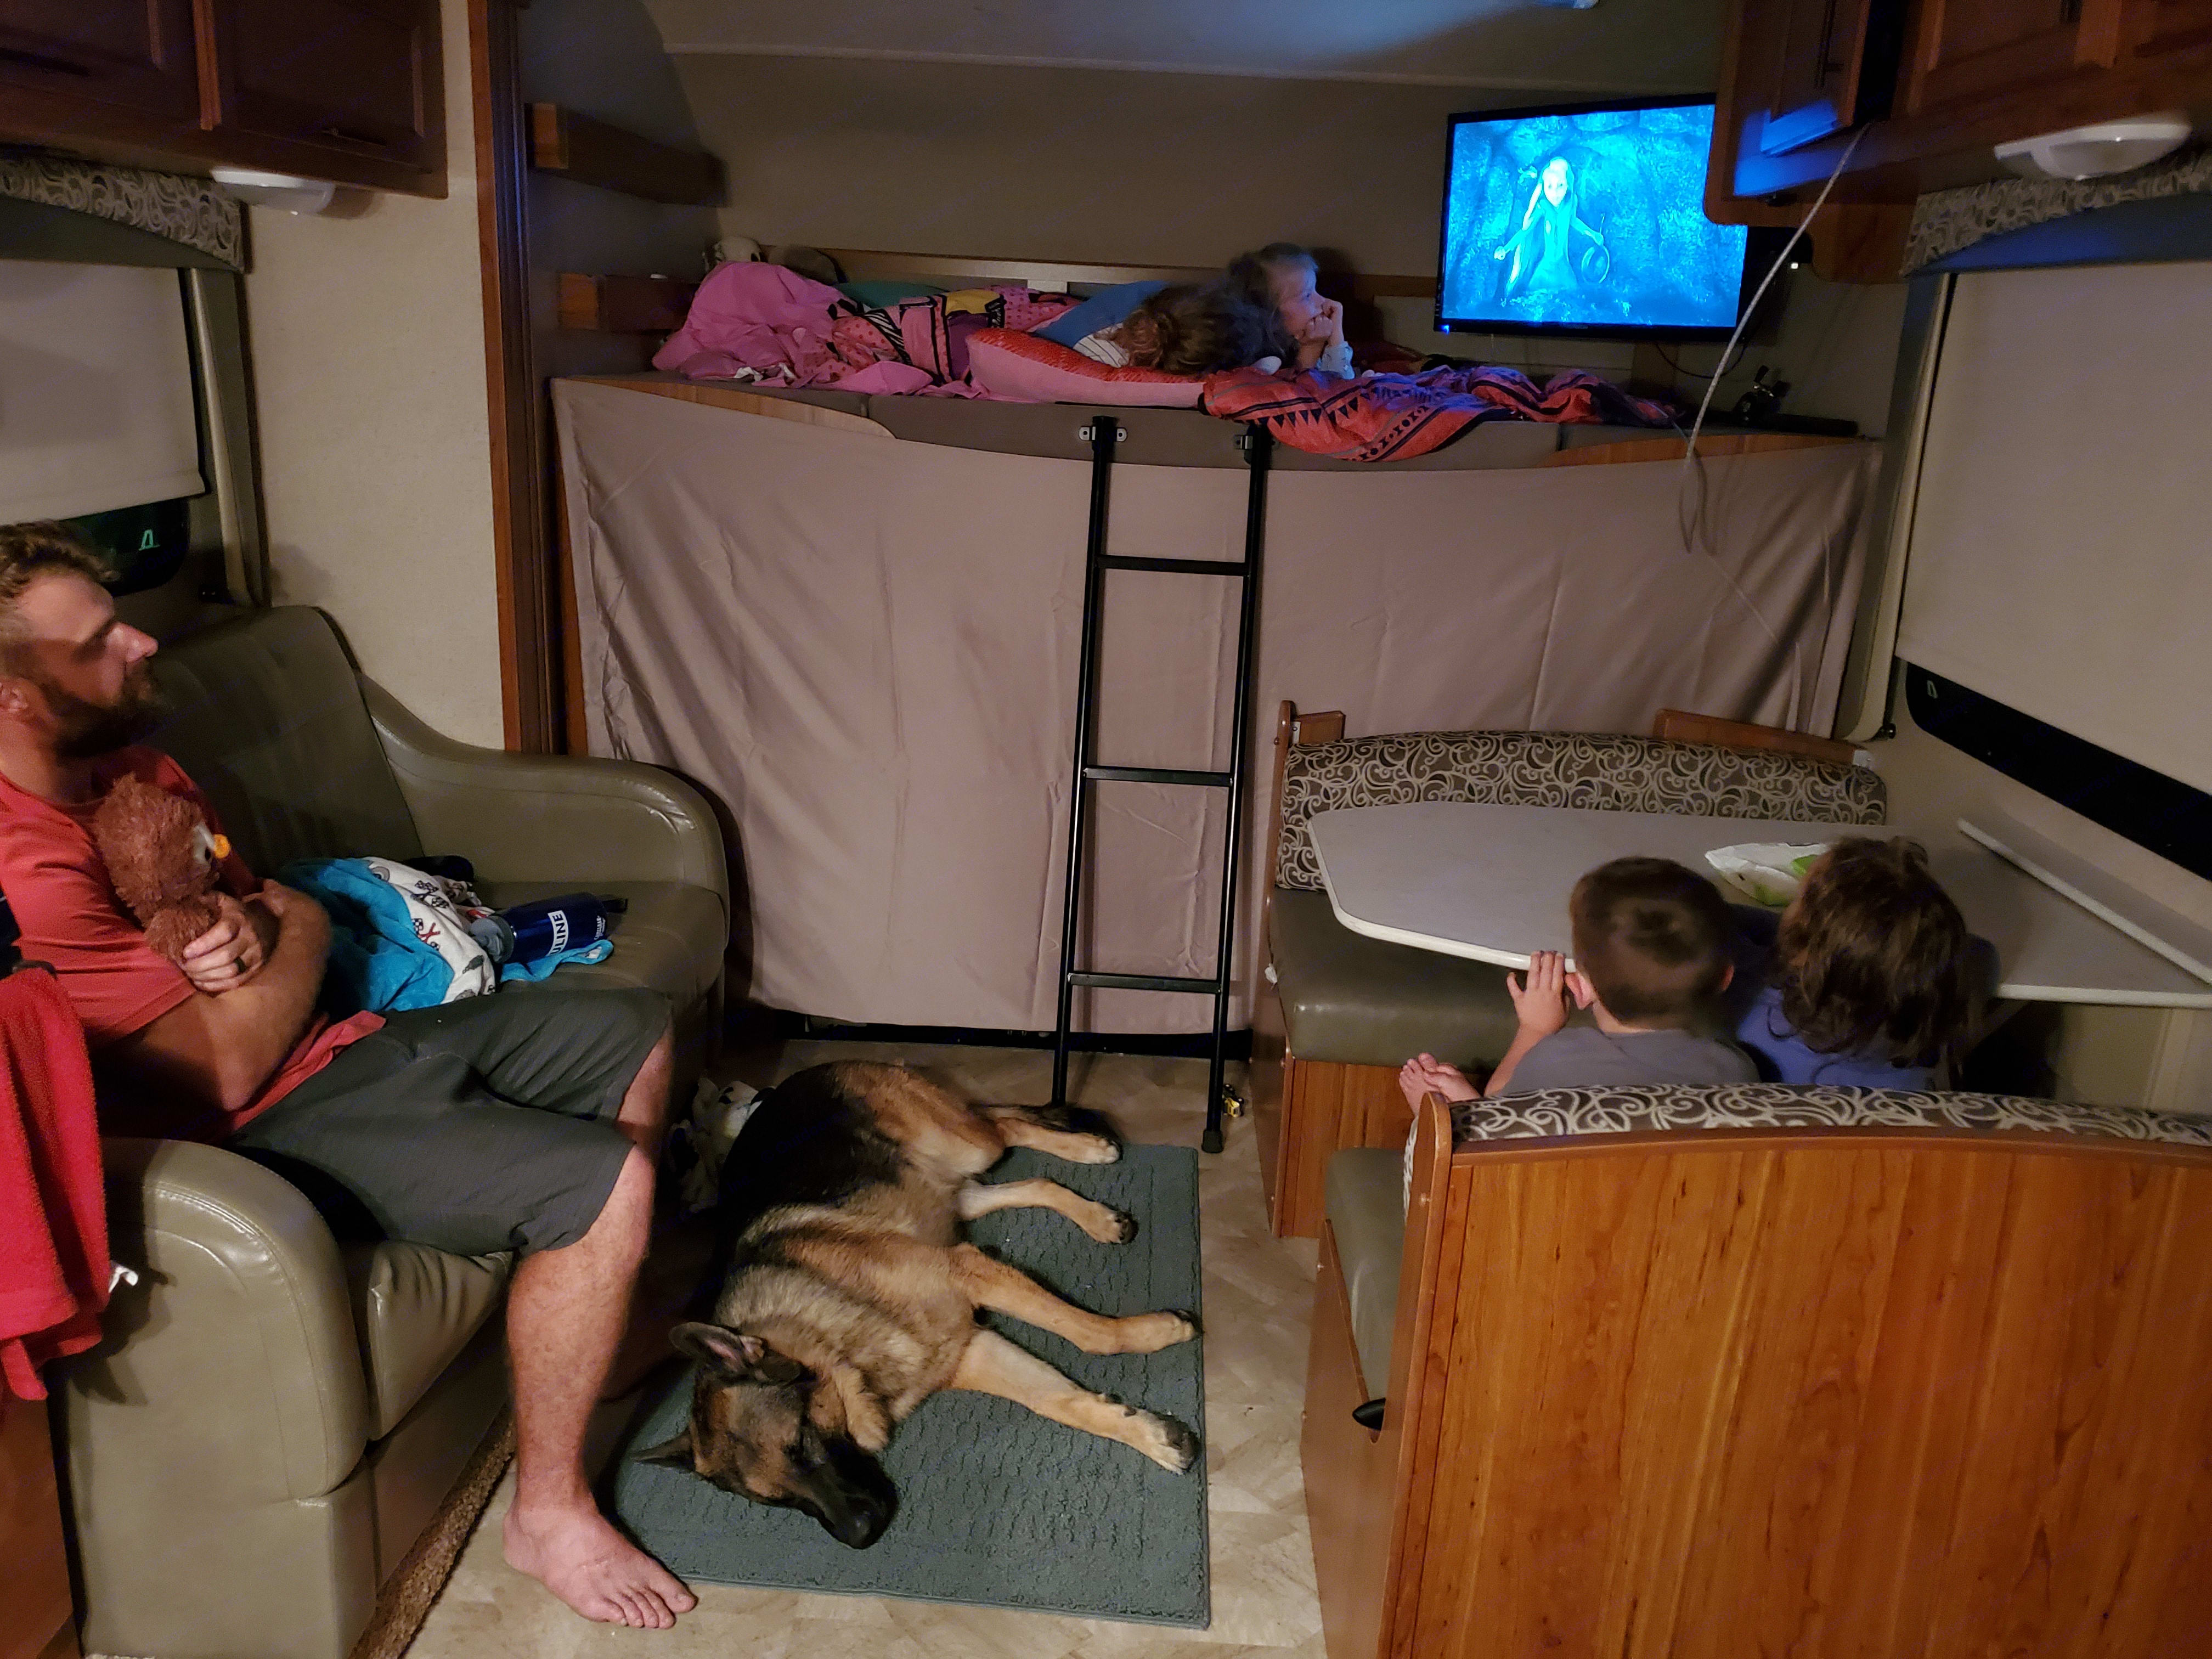 Family movie nights are still possible on the road with a nice flat screen tv and DVD player! Pop some popcorn in the microwave and snuggle up!. Jayco Redhawk 2017